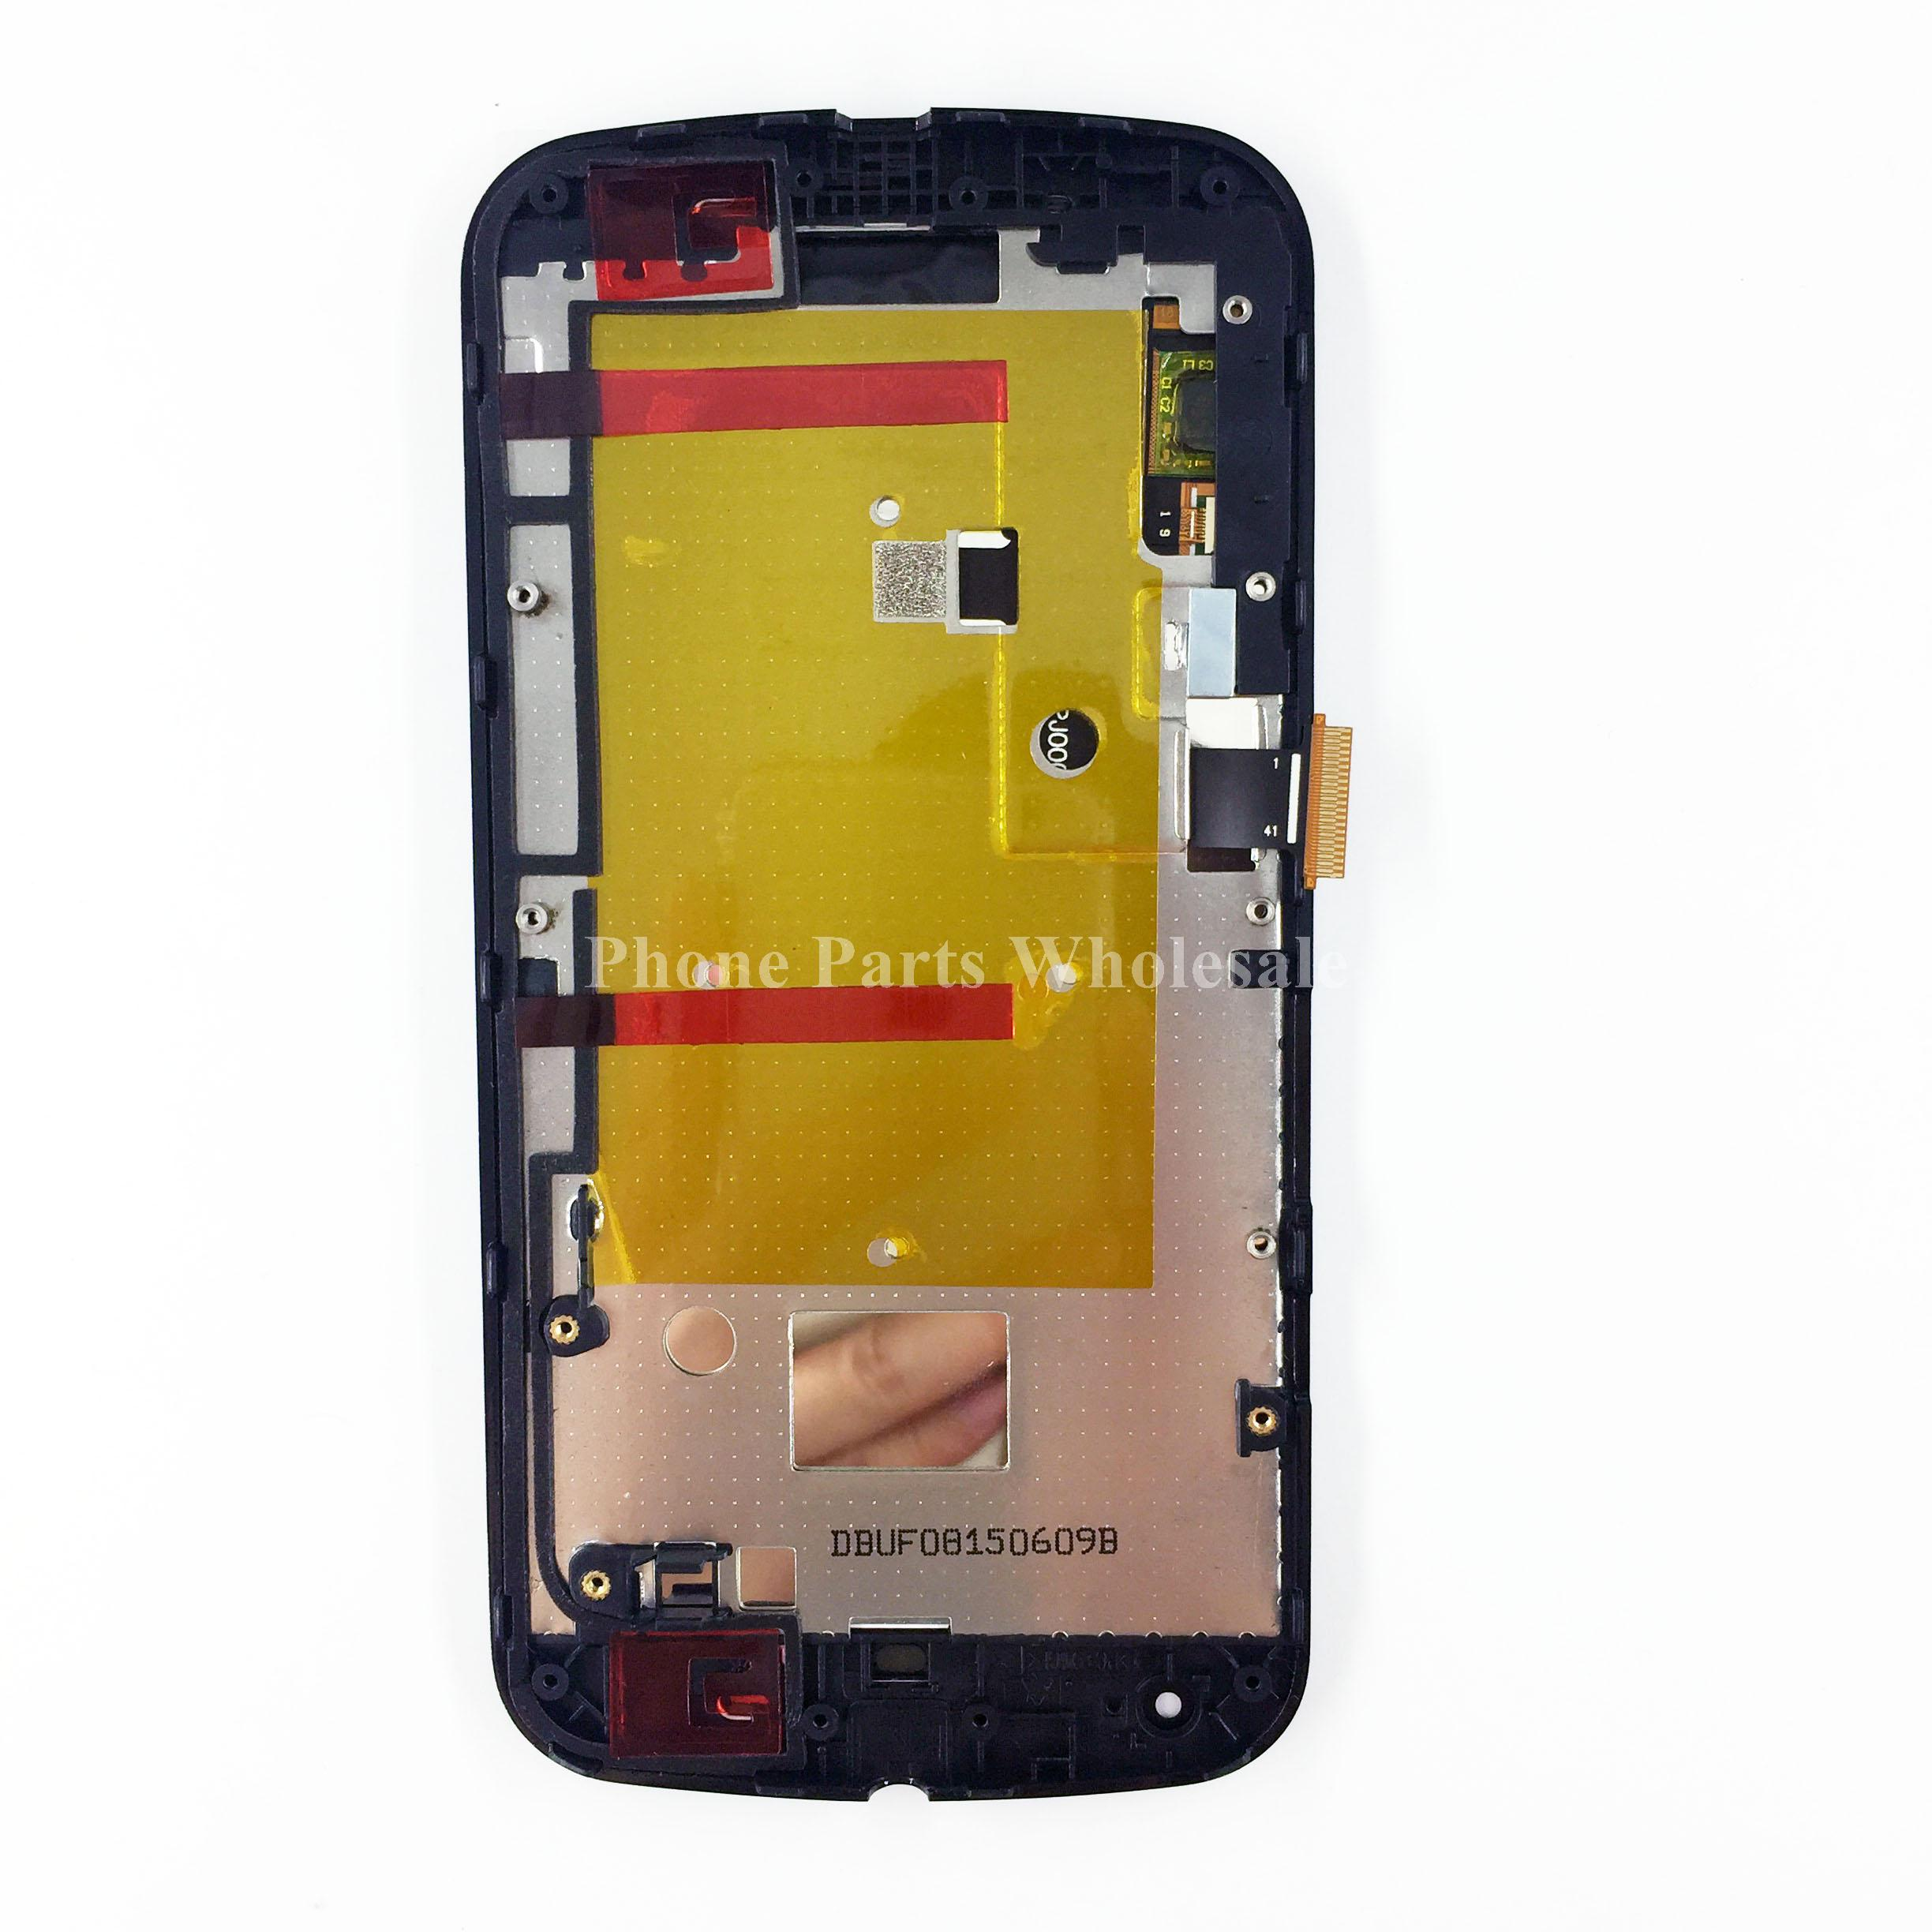 ФОТО For Motorola Moto G2 XT1068 XT1069 XT1063 LCD Display+Touch Screen Digitizer Glass Panel Replacement Parts